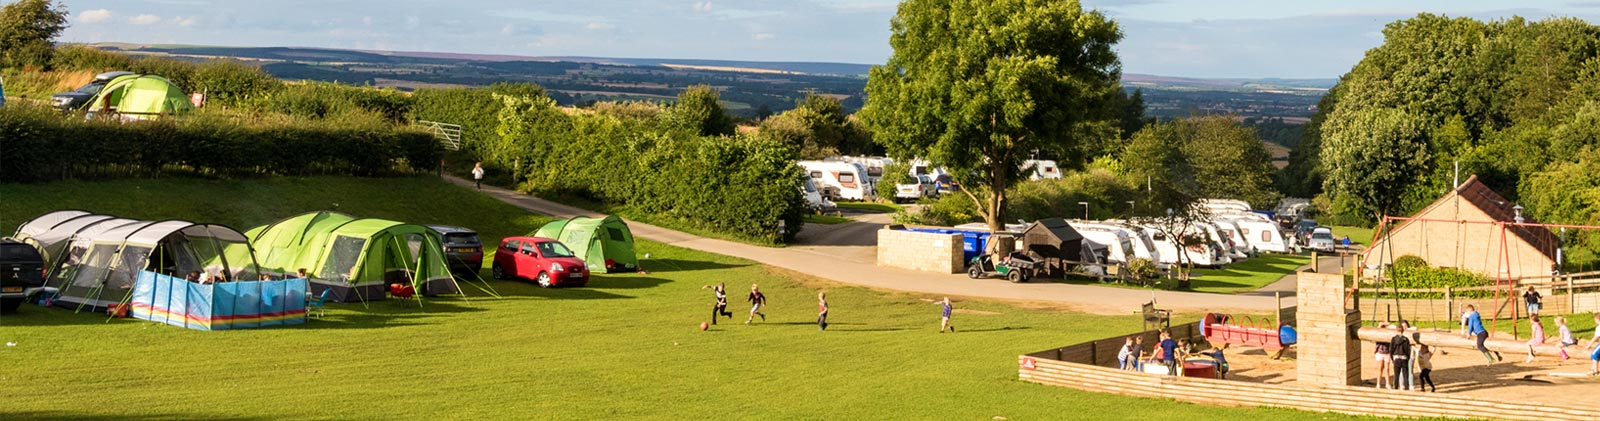 Golden Square Touring and Camping Site in North Yorkshire